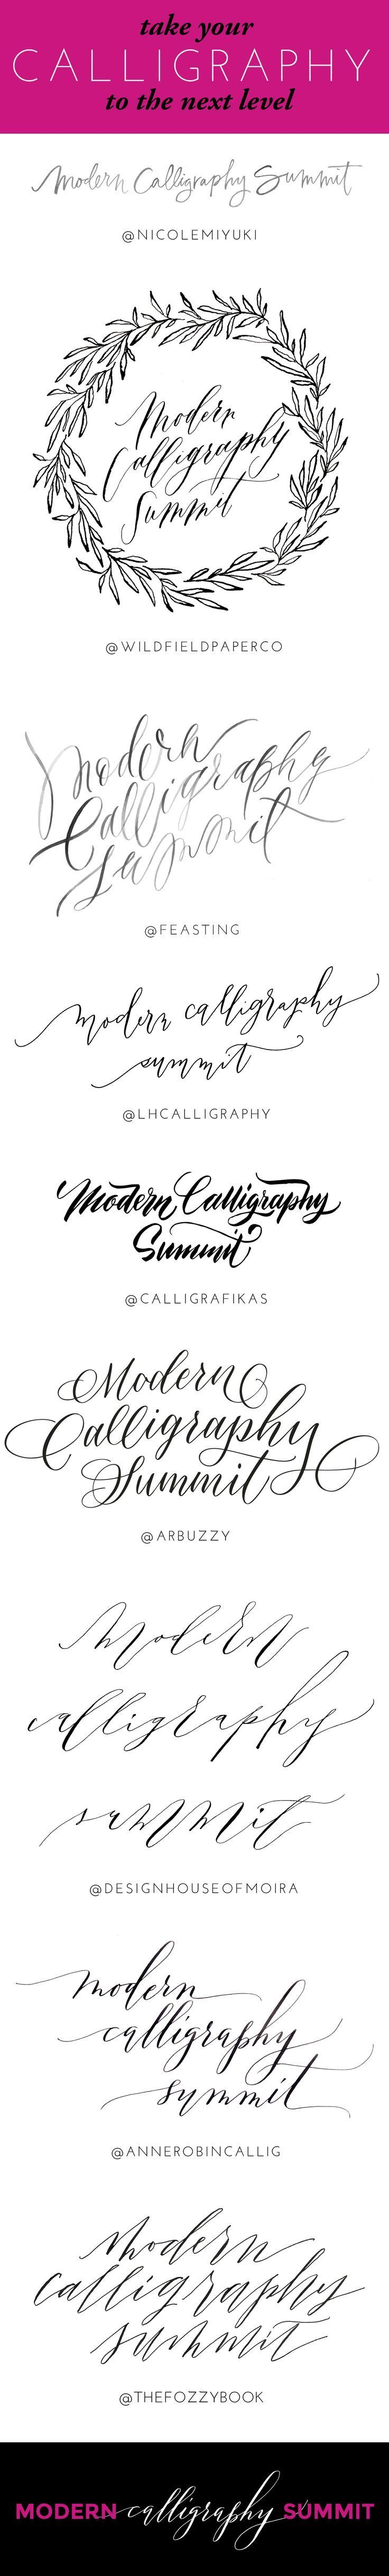 Learn modern calligraphy learn brush lettering learn Where to learn calligraphy